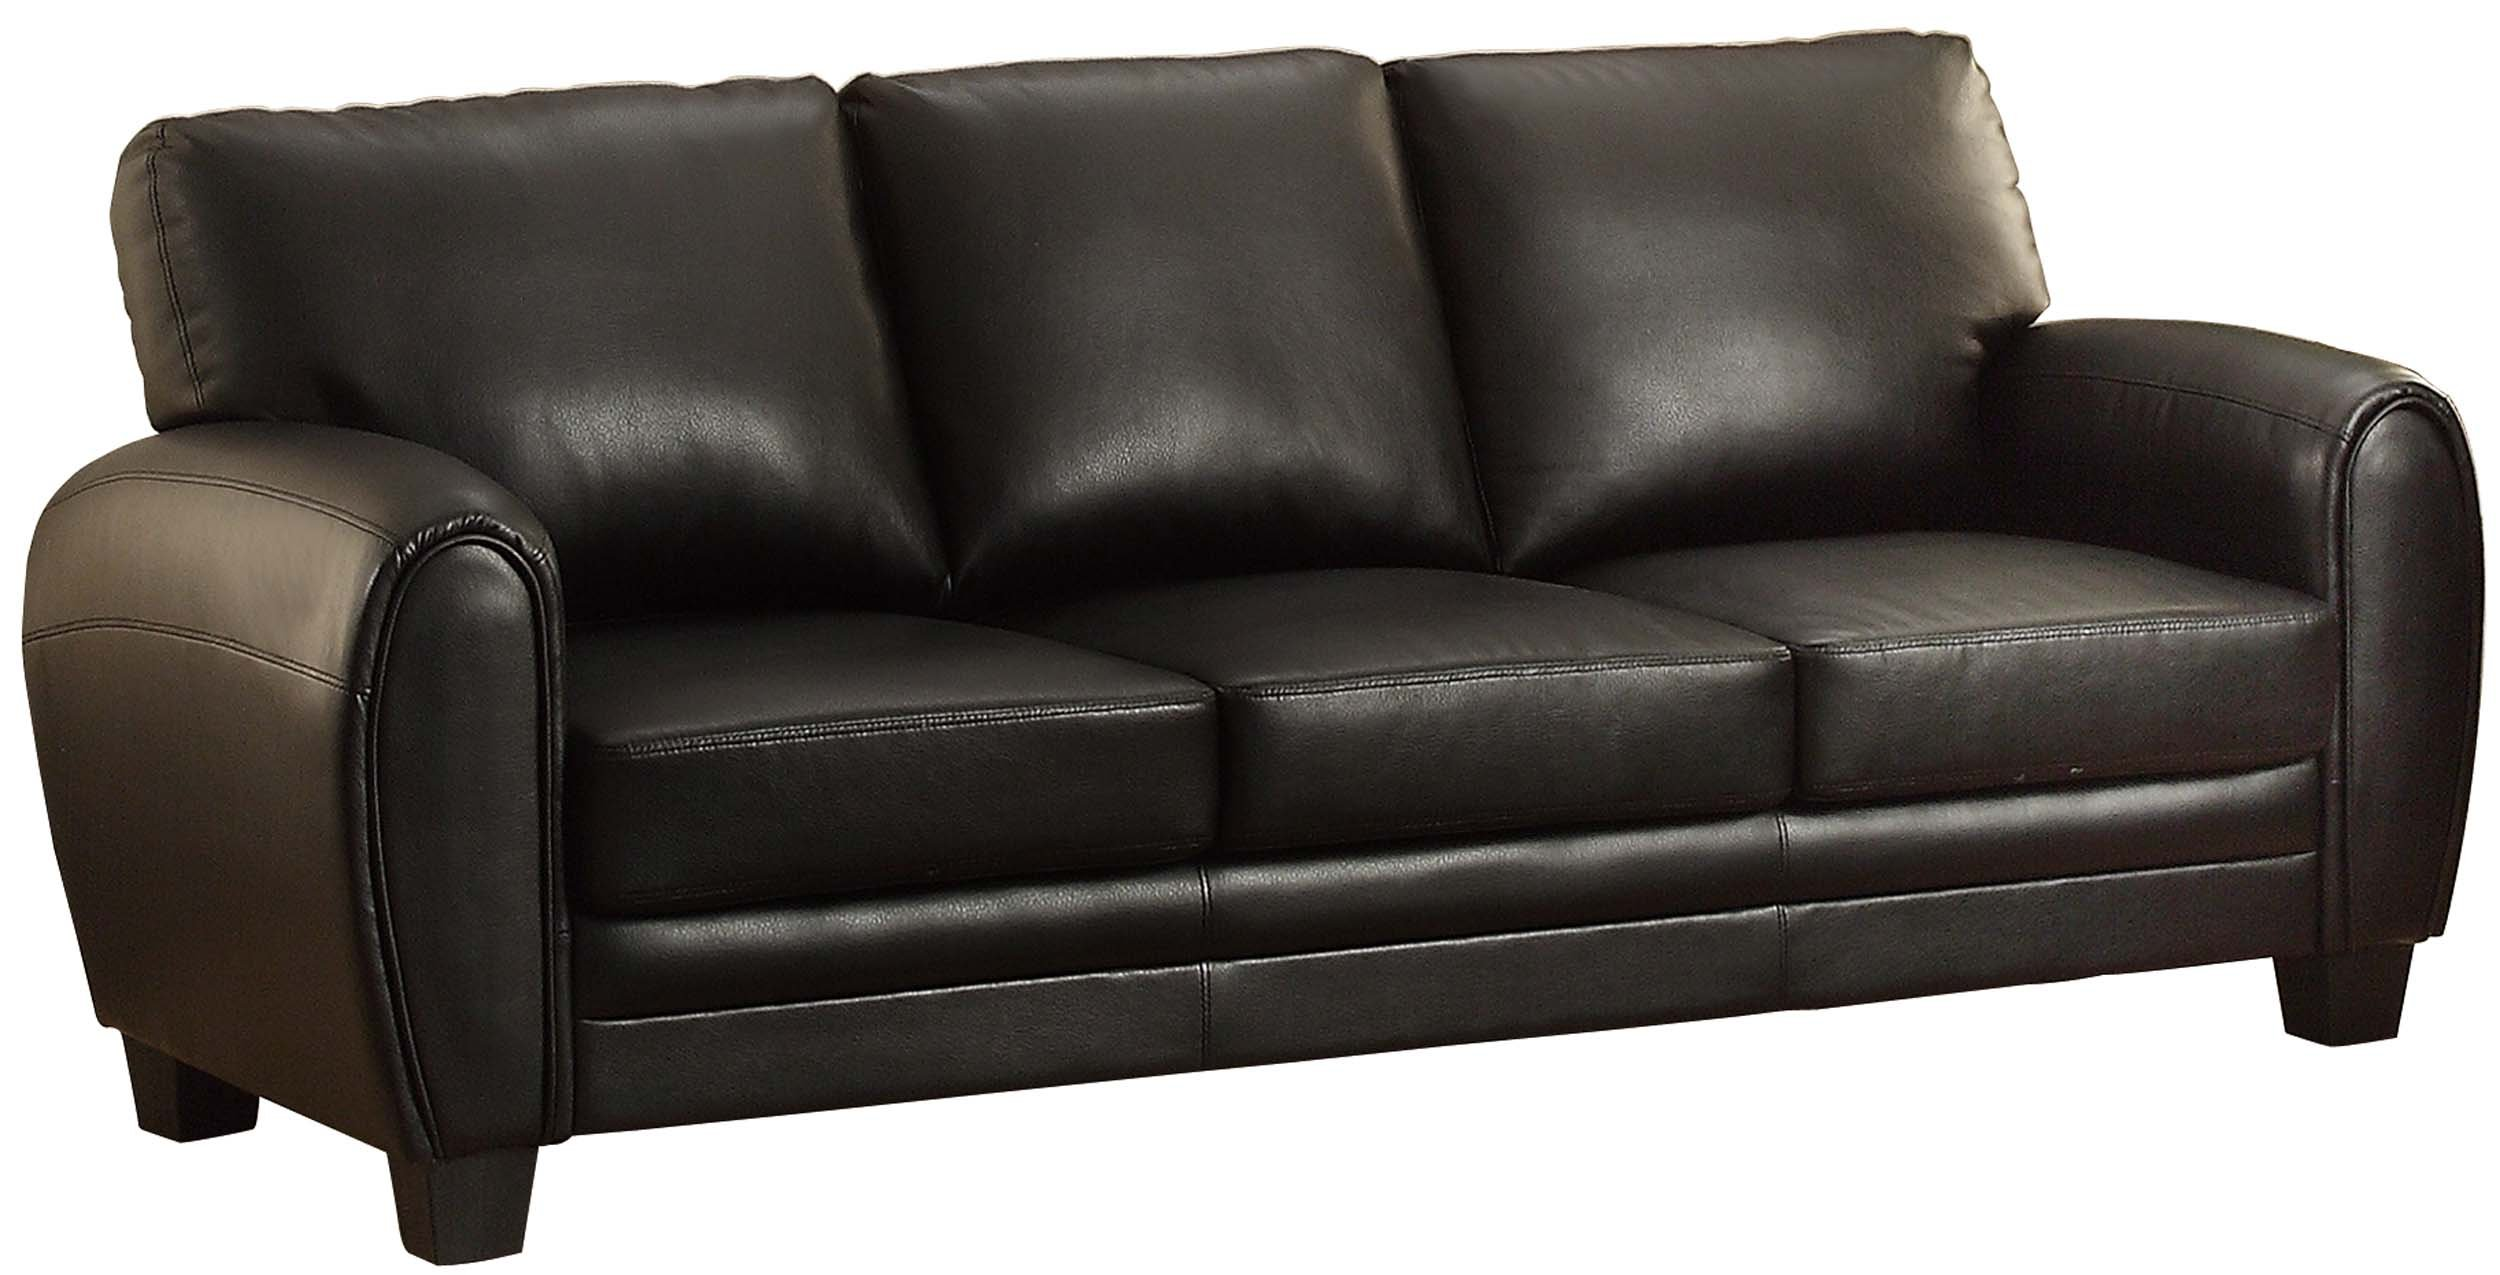 bonded leather sofas amazon com rh amazon com Bonded Leather Sectional Sofa Bonded Leather Sectional